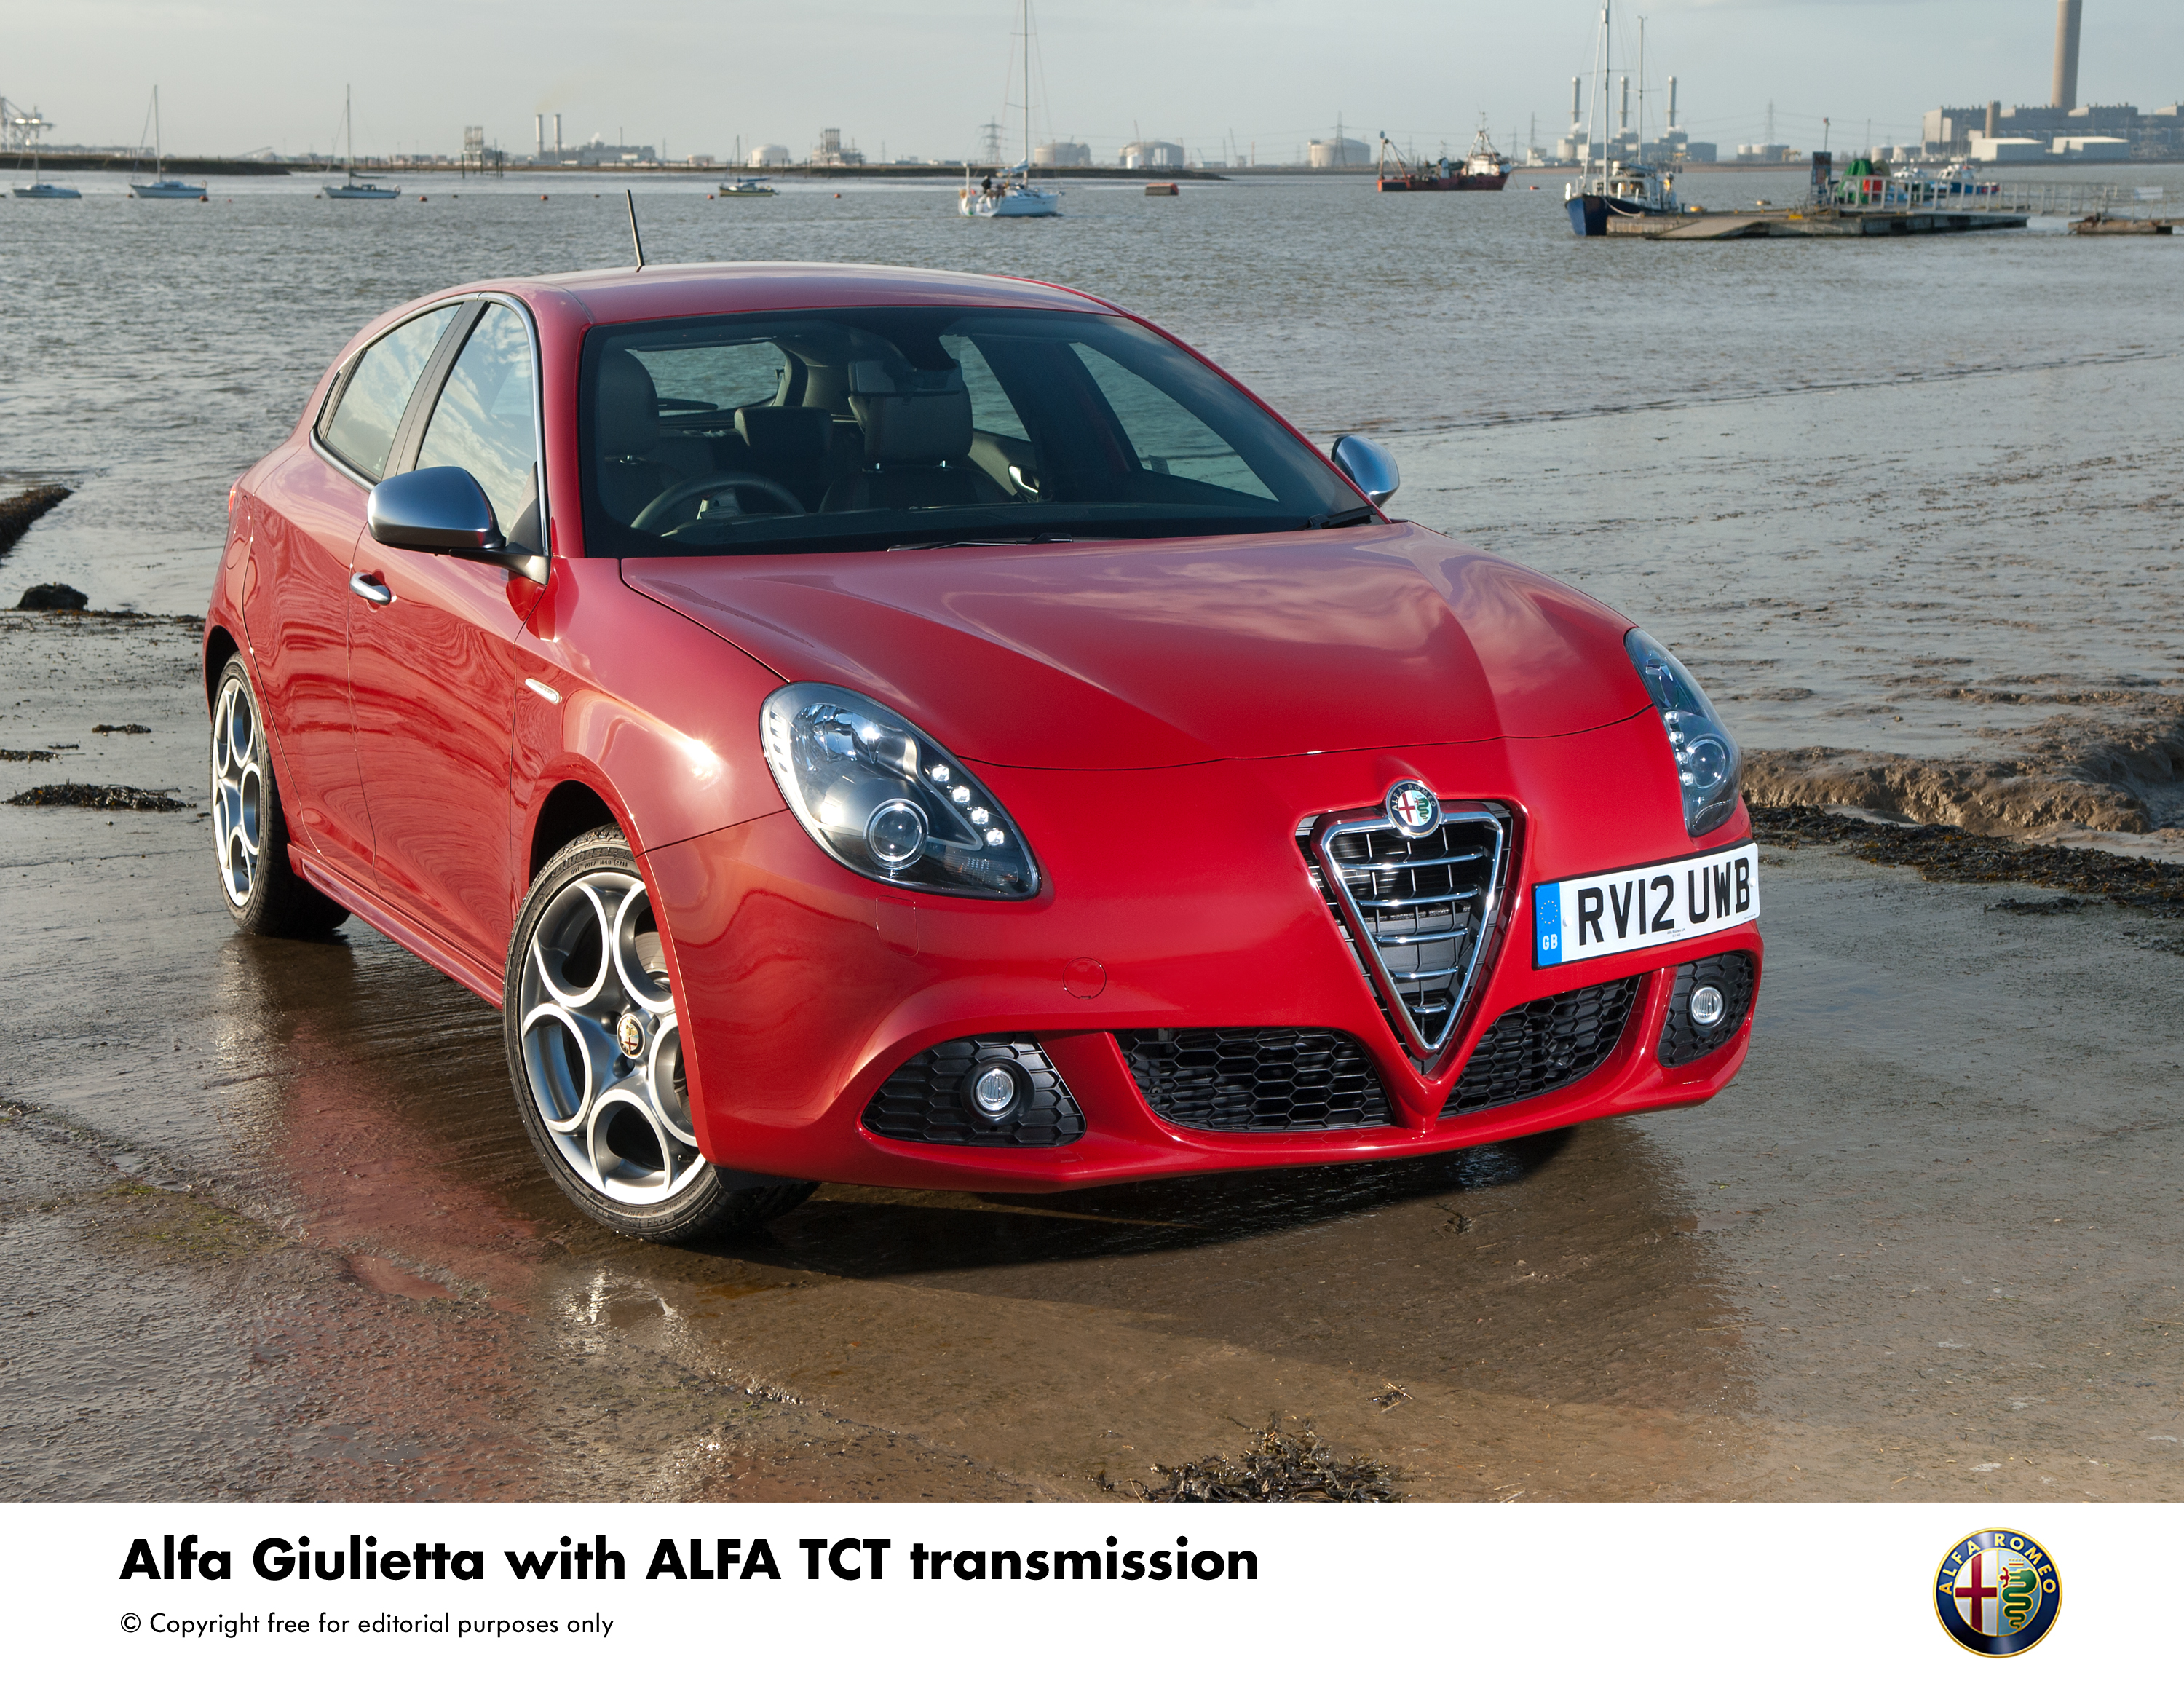 Alfa Tct Semi Automatic Transmission Available In Uk Giulietta Range Romeo Images